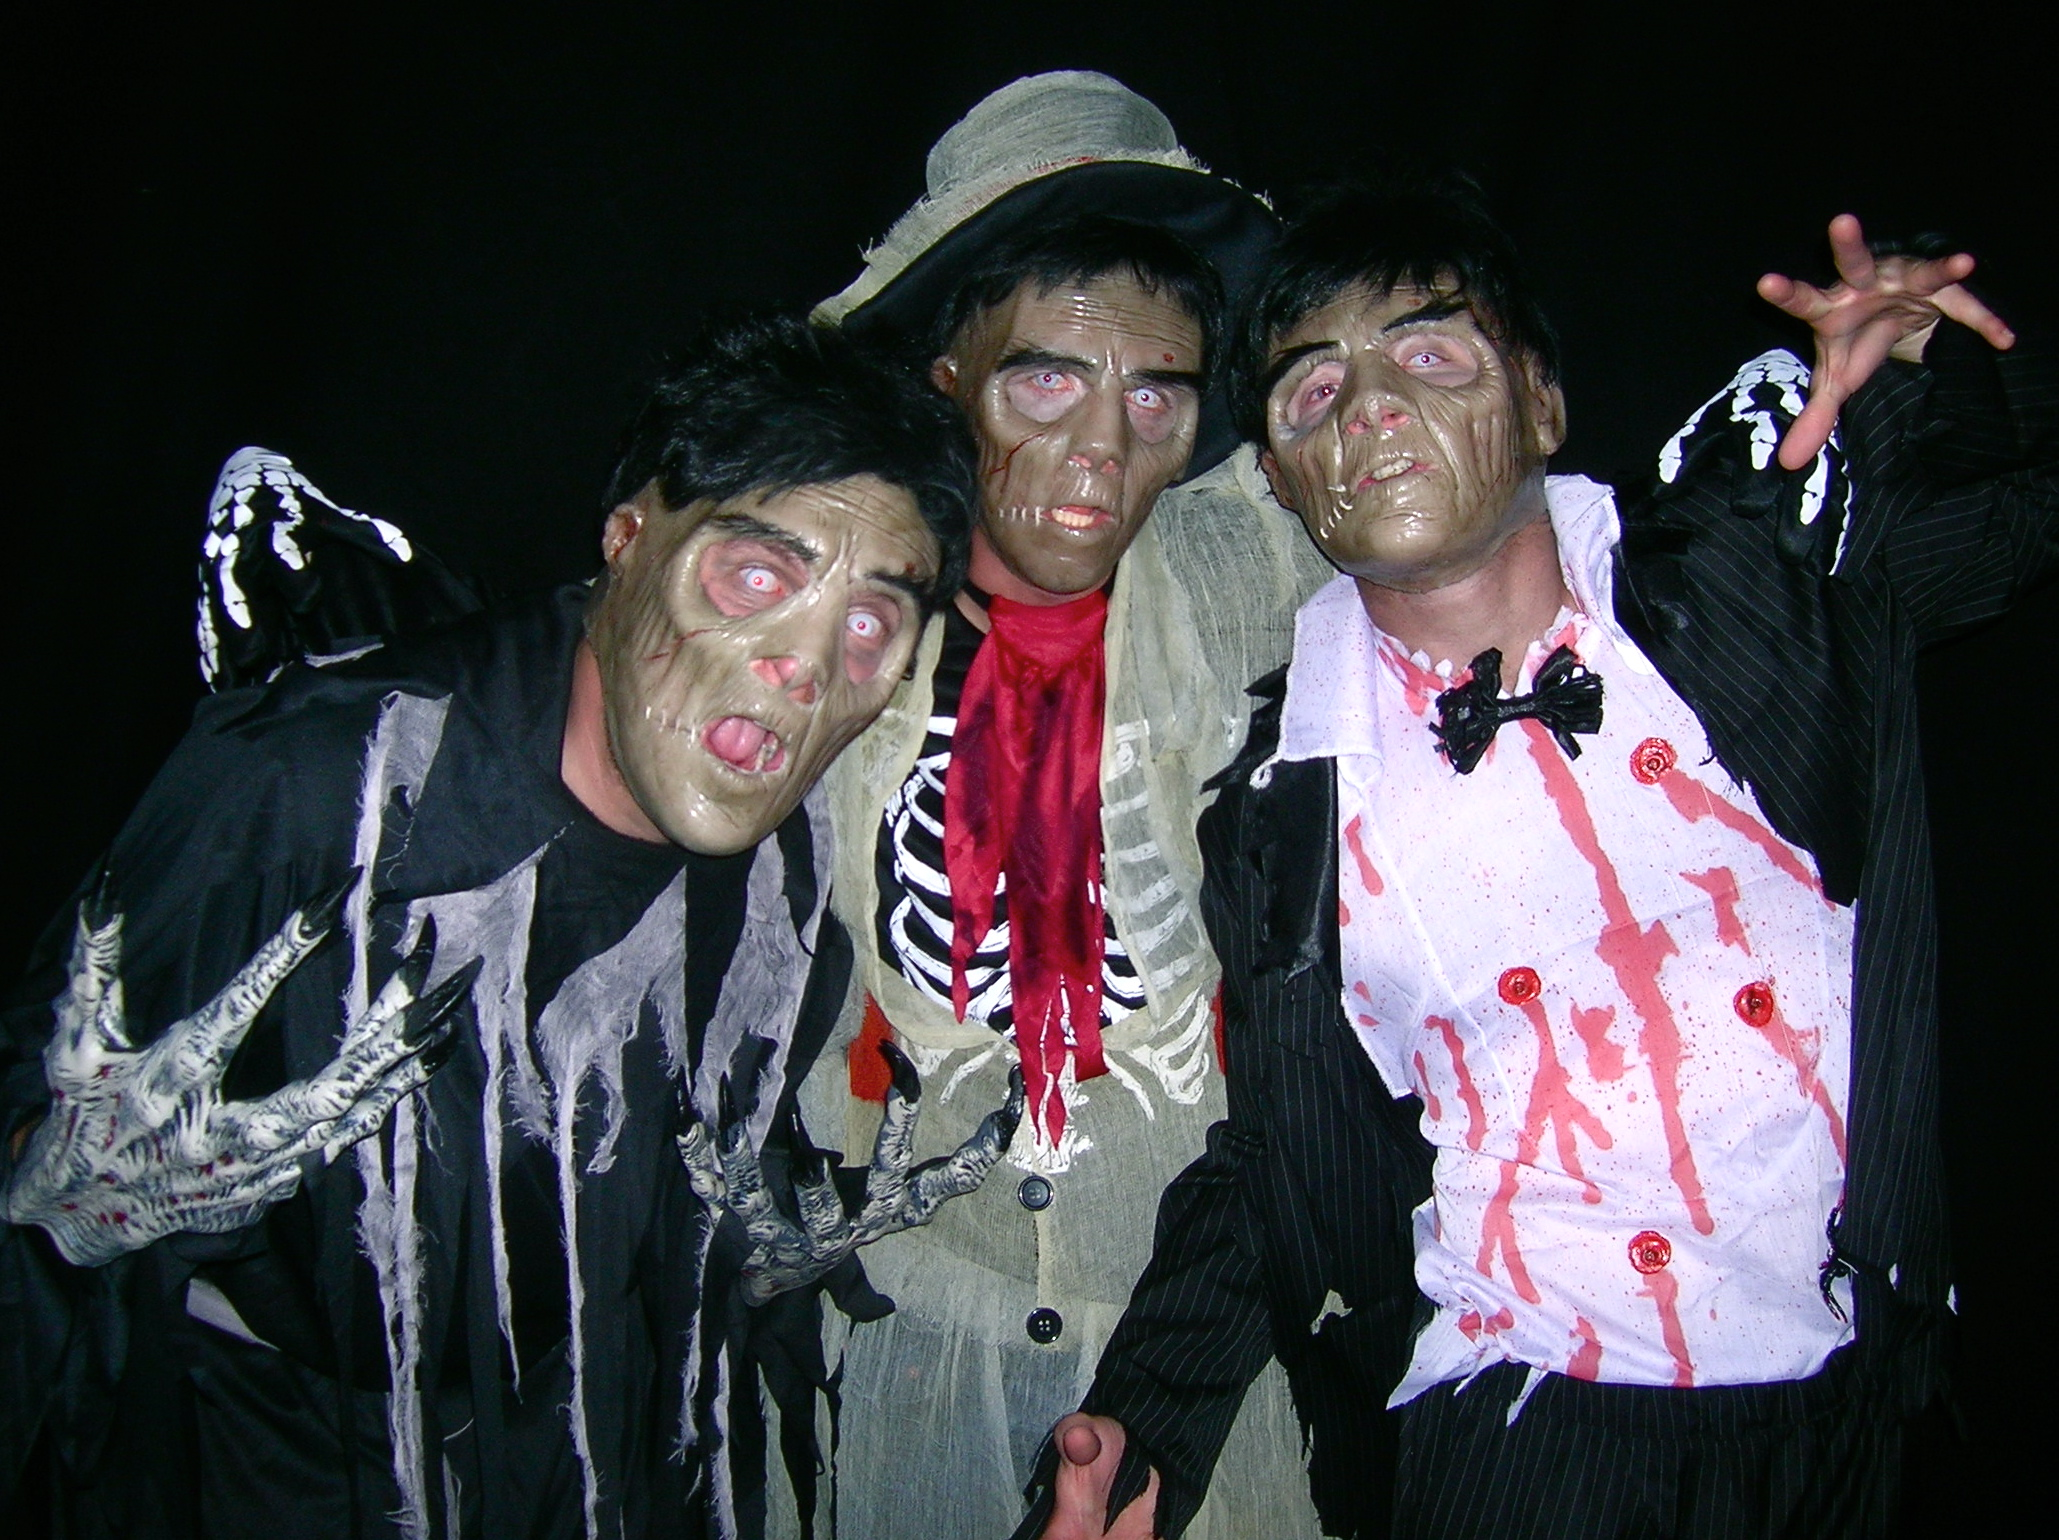 Tom, Tom and Matt as Zombies